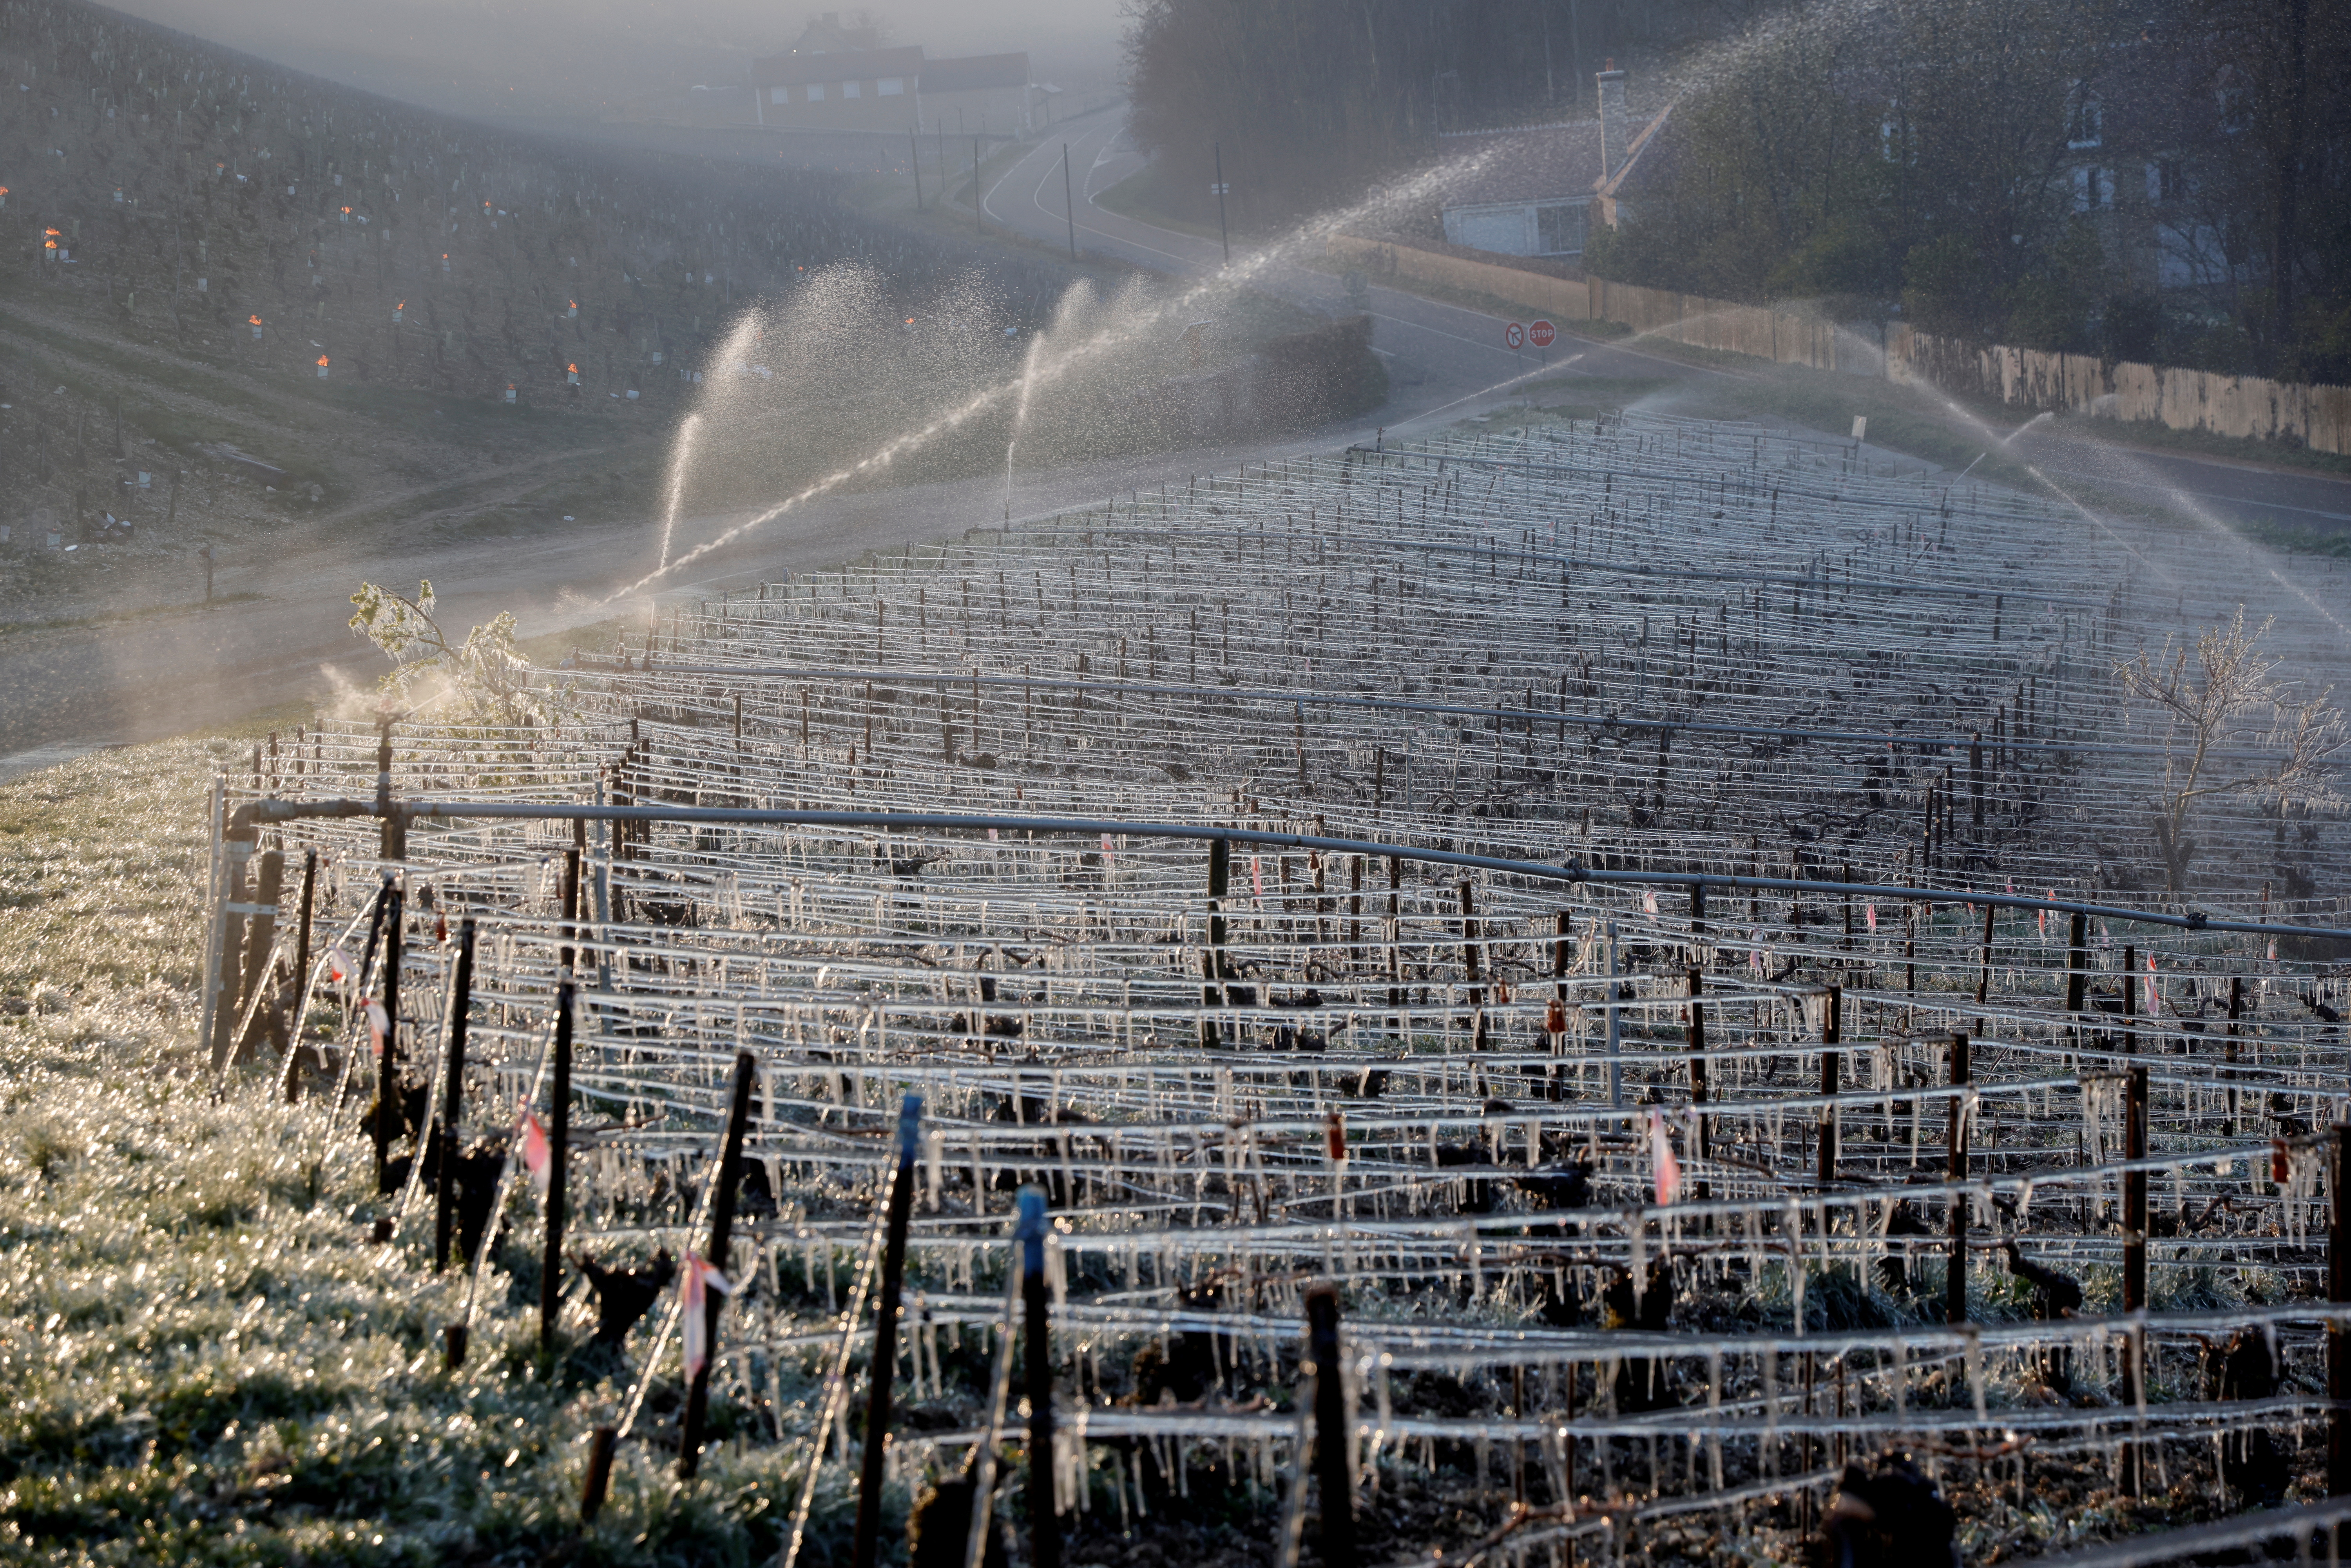 Water is sprayed early in the morning to protect vineyards from frost damage outside Chablis, France, April 7,2021. REUTERS/Pascal Rossignol//File Photo